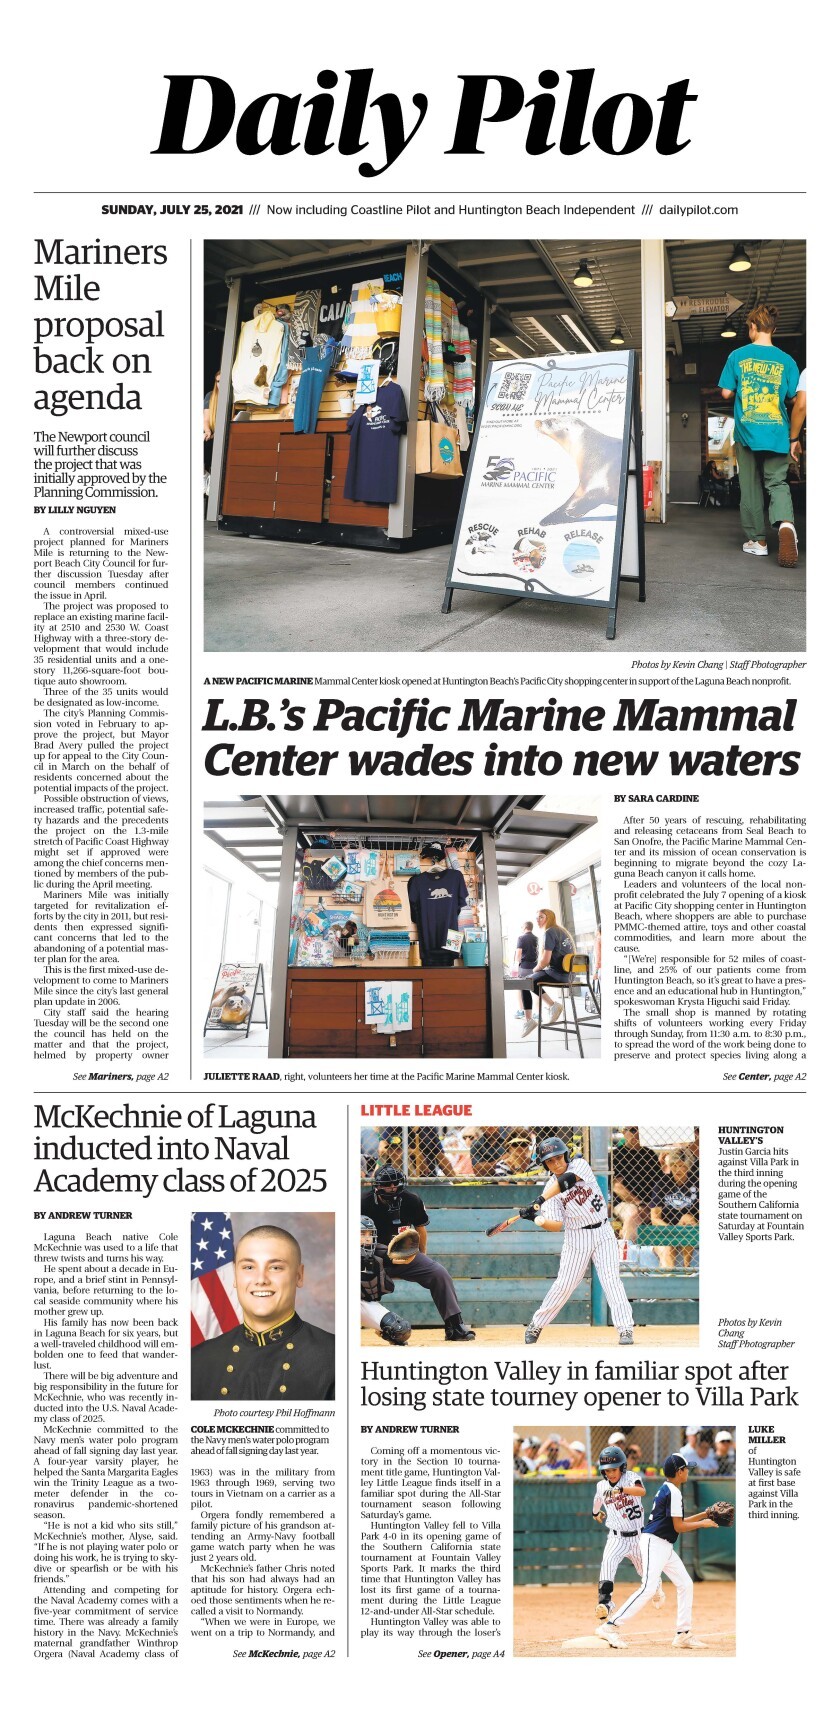 Front page of Daily Pilot e-newspaper for Sunday, July 25, 2021.